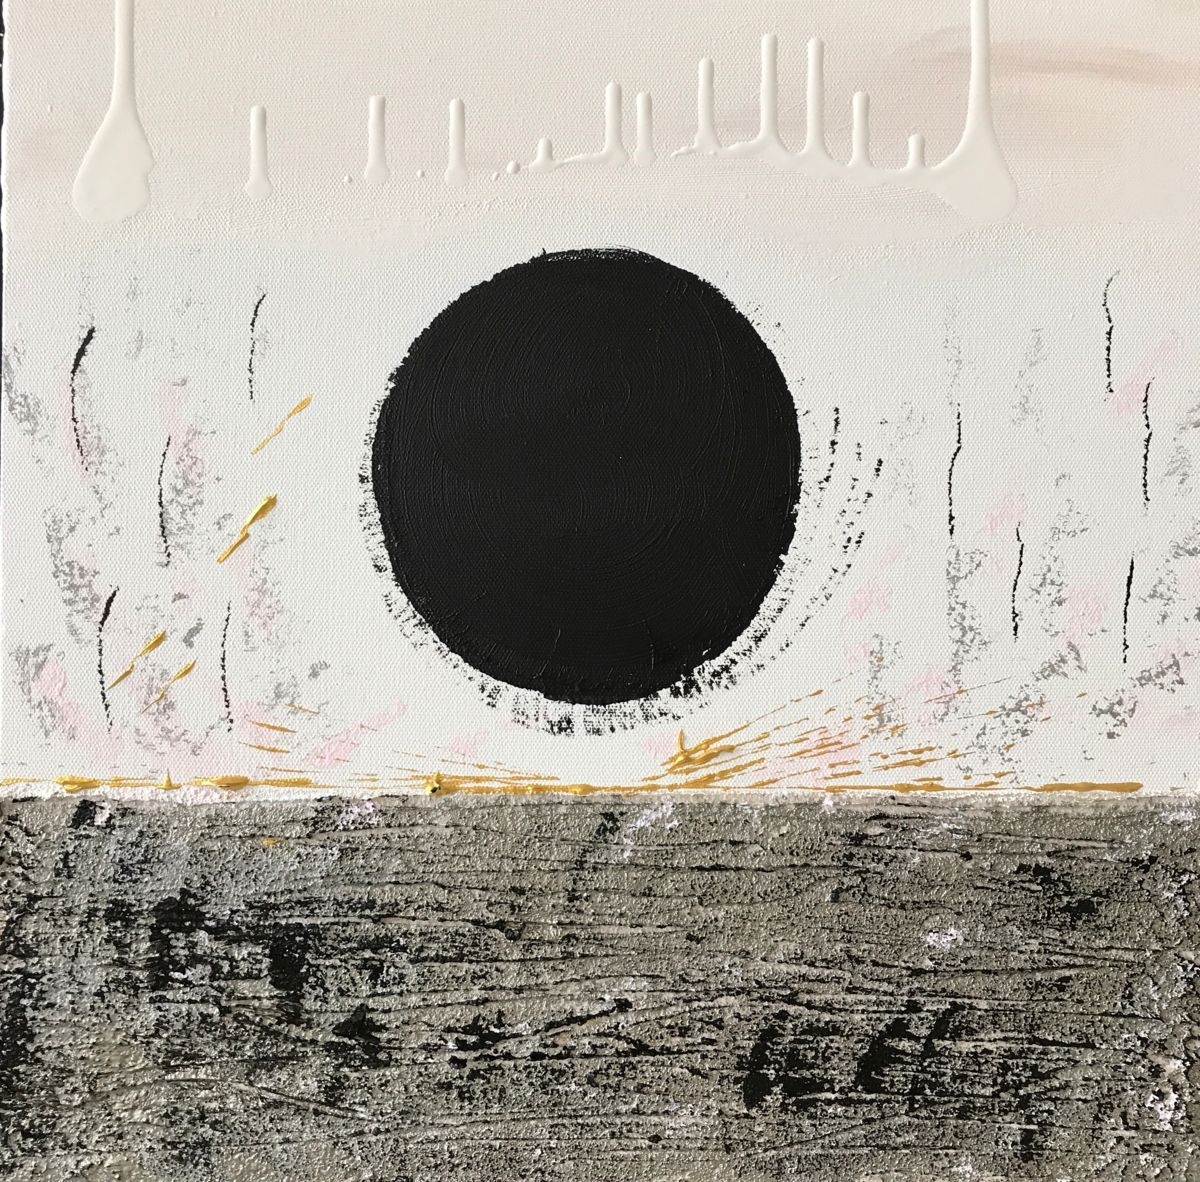 An abstract minimalist painting of a black spot.